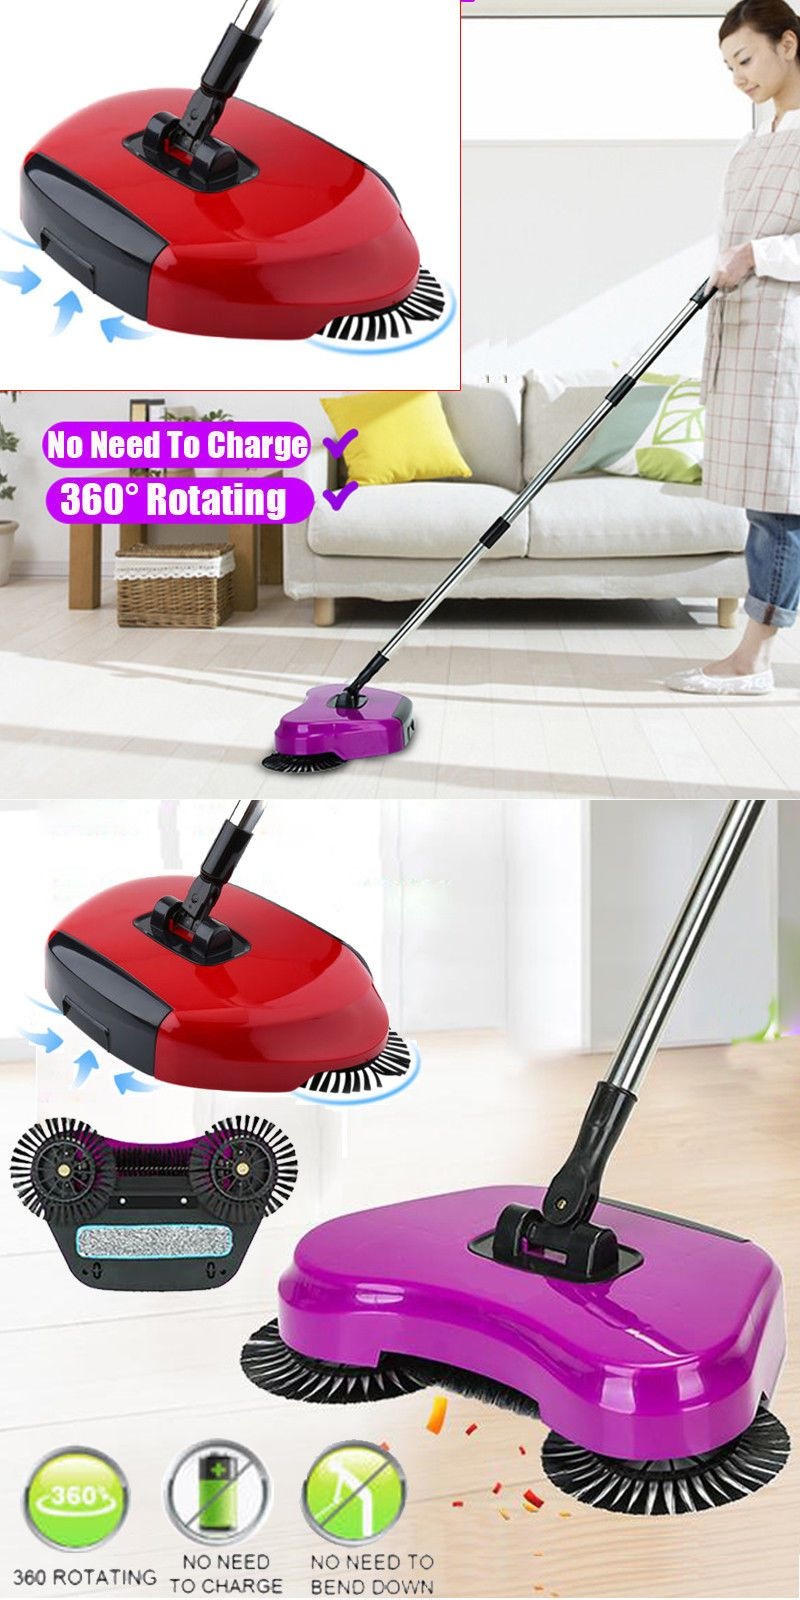 Details About Non Electric Spin Hand Push Sweeper Broom Household